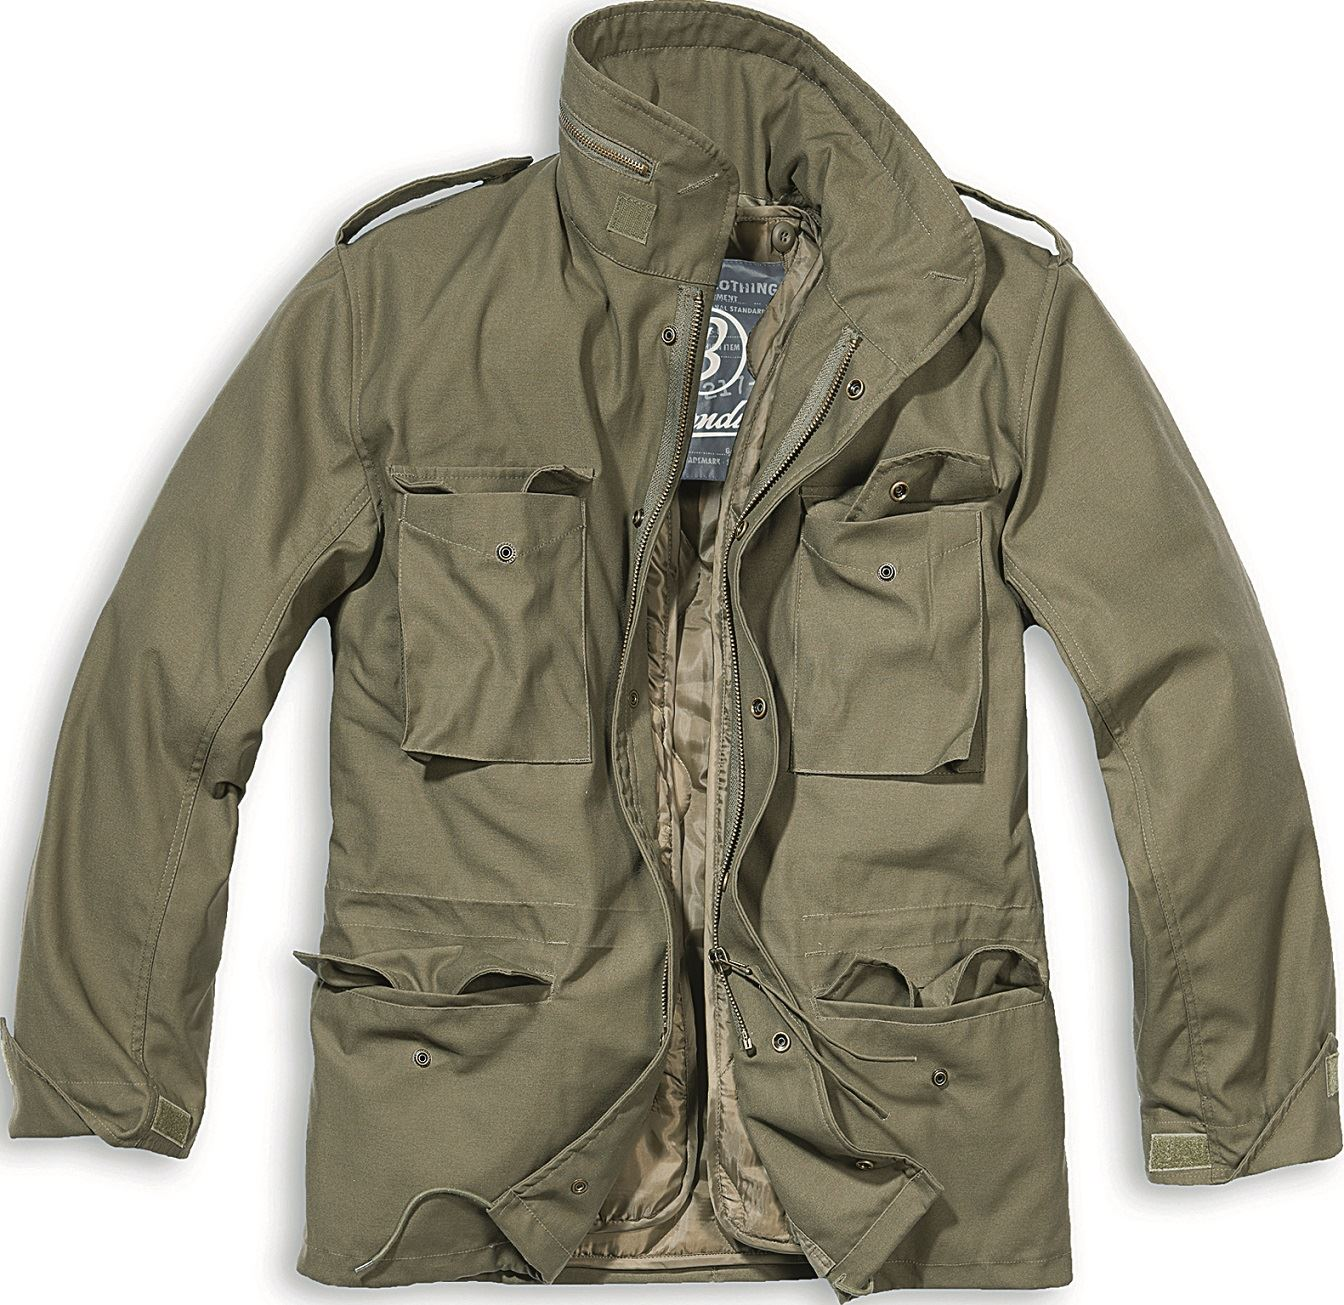 Insulated Military Jackets Stay warm and comfortable when the weather cools down with Insulated Military Jackets from Sportsman's Guide. We have great selection of Military Surplus Winter Coats and Army Coats to match your style and your budget!